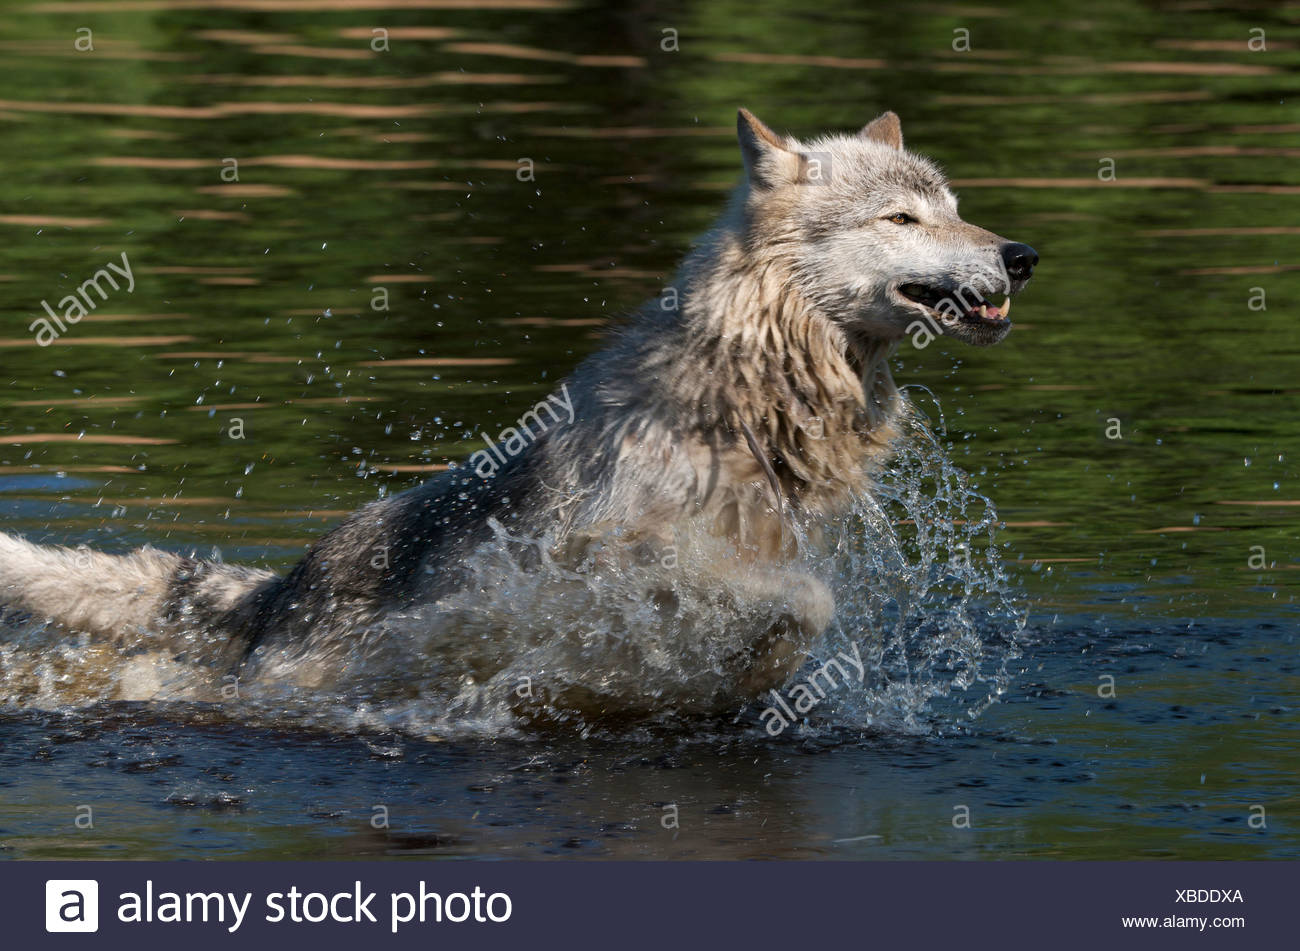 North American Timber Wolf Stock Photos & North American Timber Wolf